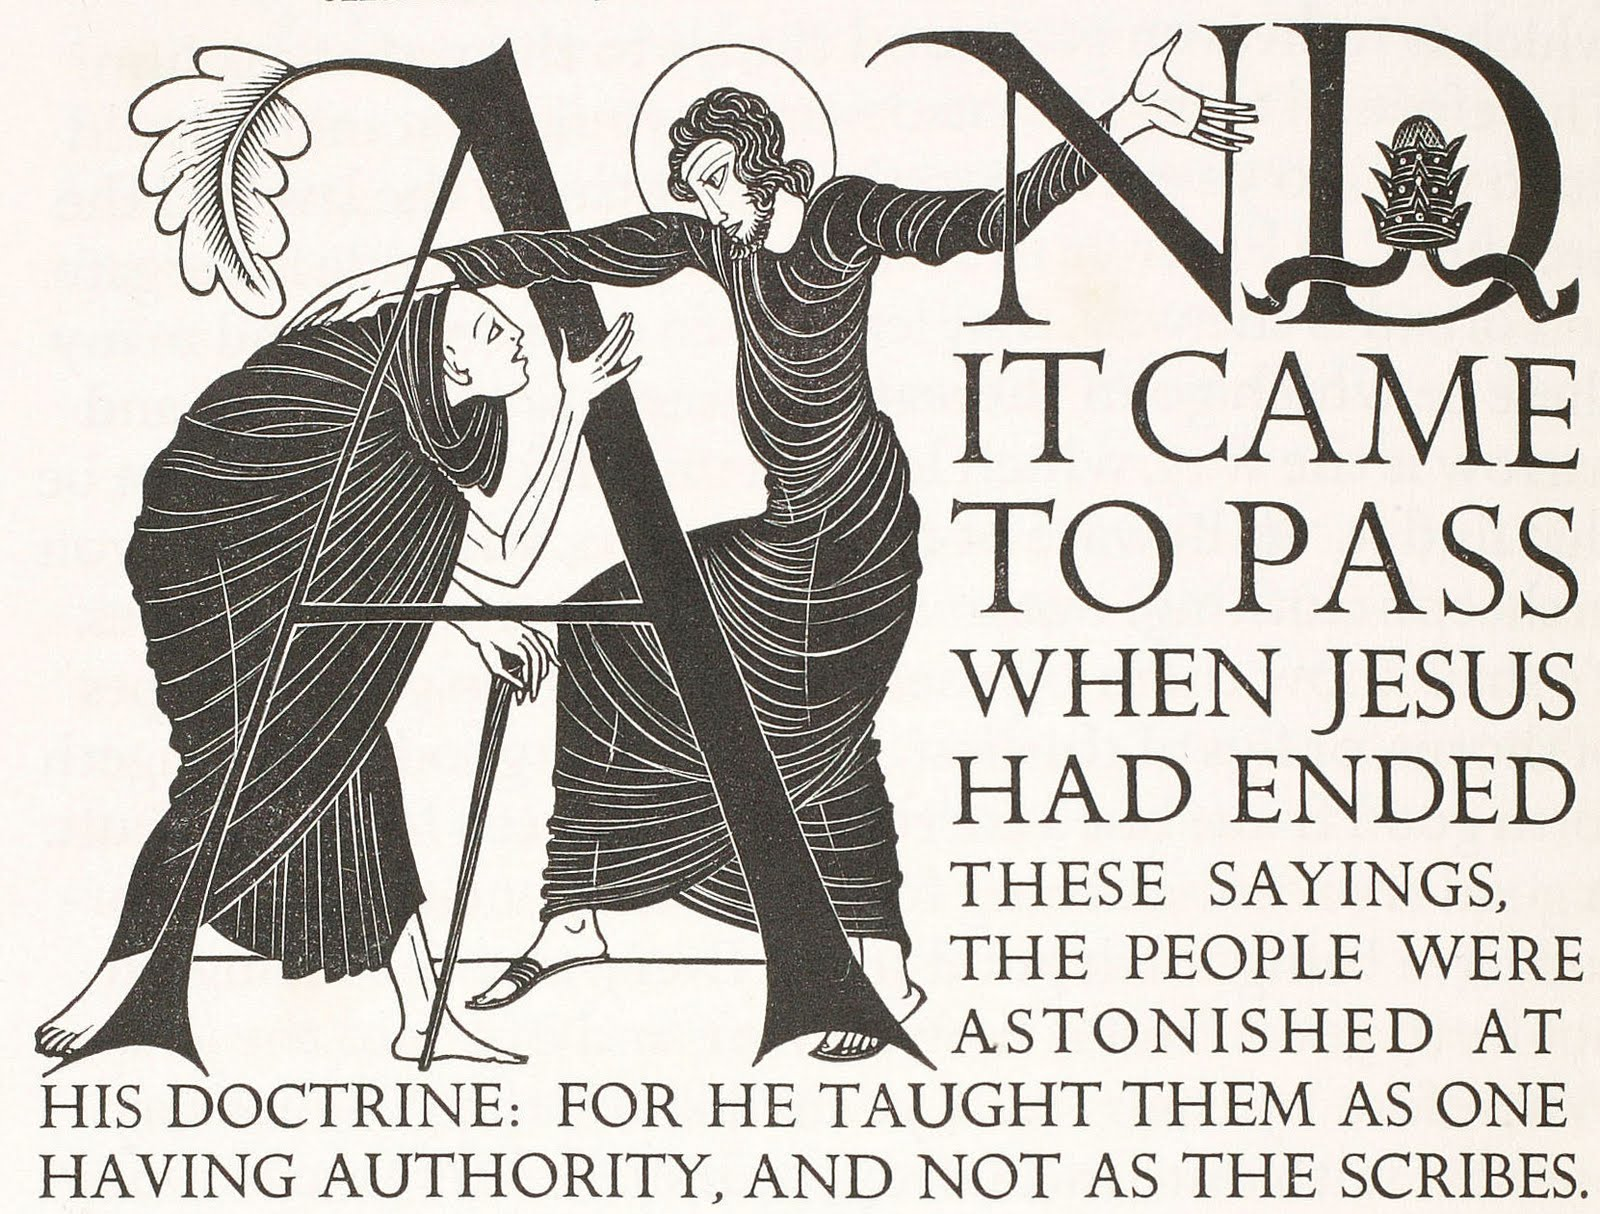 Eric Gill,  Illustrated Initial Capital, Matthew 7:28 , from  The Four Gospels , published by Cockerel Press, 1931. (Note: I have long admired this book. As I was preparing this post, I took a peek to see what a copy of the original 600 copy run would cost, if I were to save my nickels to acquire one. Answer: a gigantic pile of nickels. $22,000 will get you a copy. I think I'll satisfy myself with looking at the one in our rare books collection!